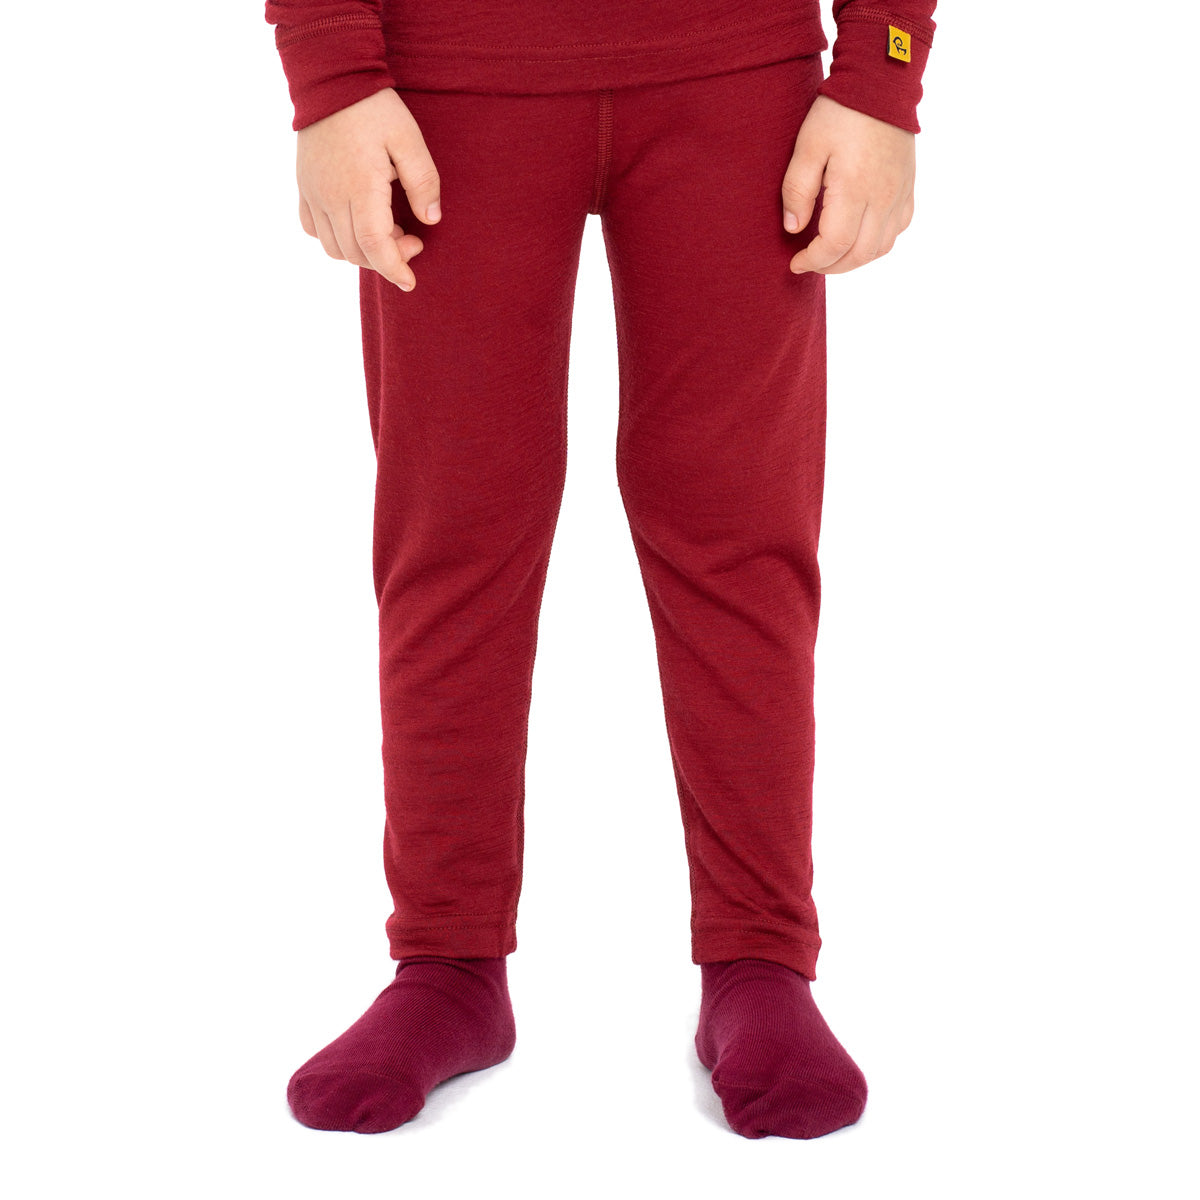 Kids' Merino 160 Pants Royal Cherry